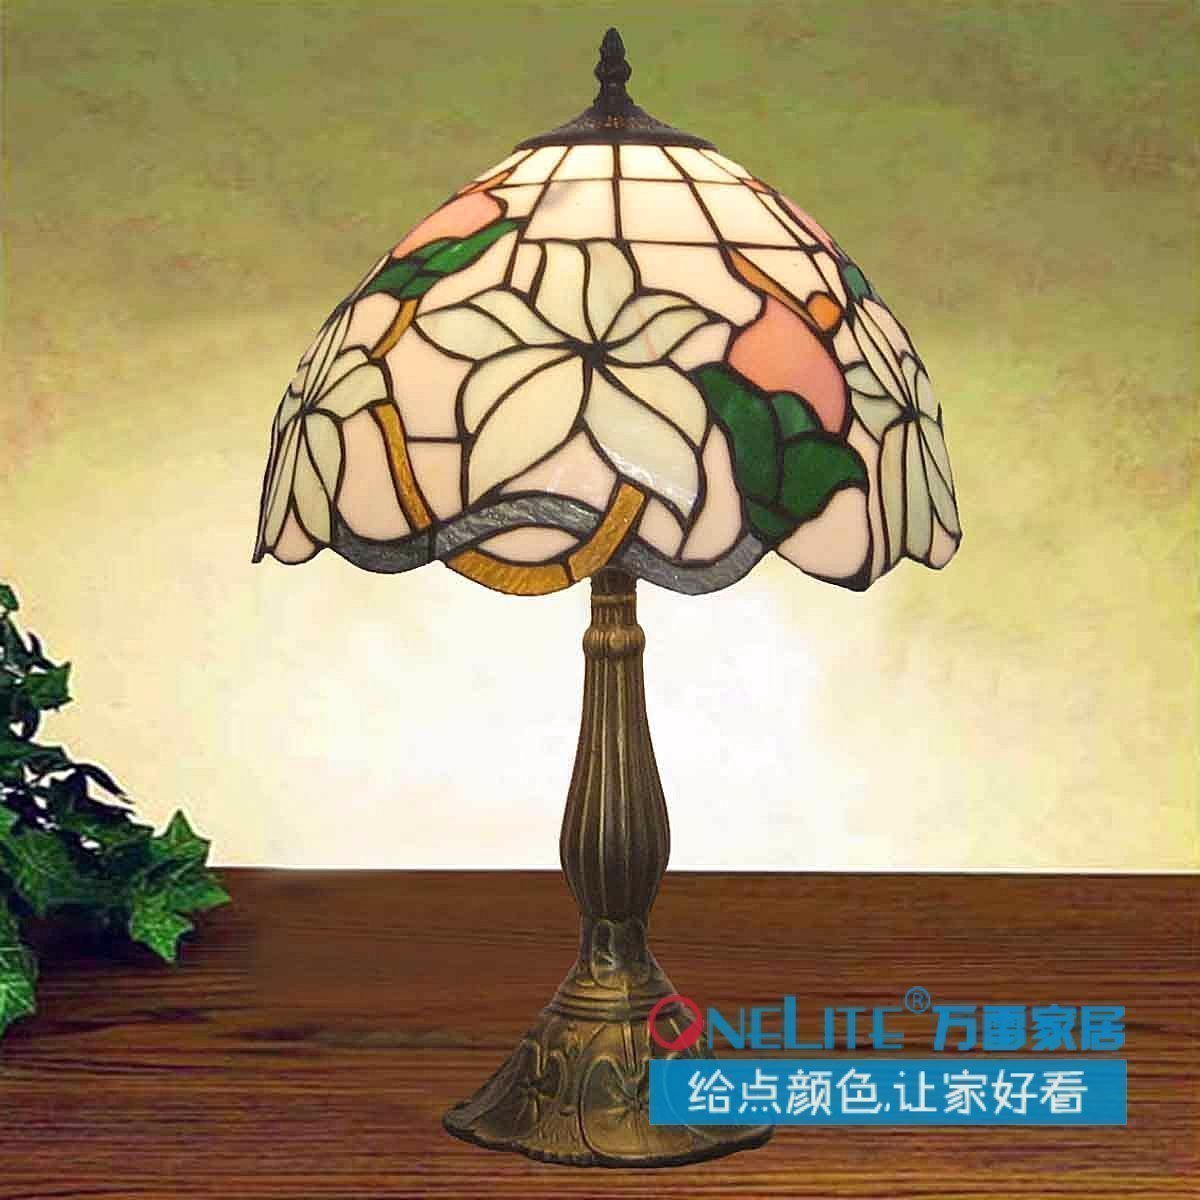 Hot Sale Lily 12 Tiffany Table Lamp Lighting Bed Lighting